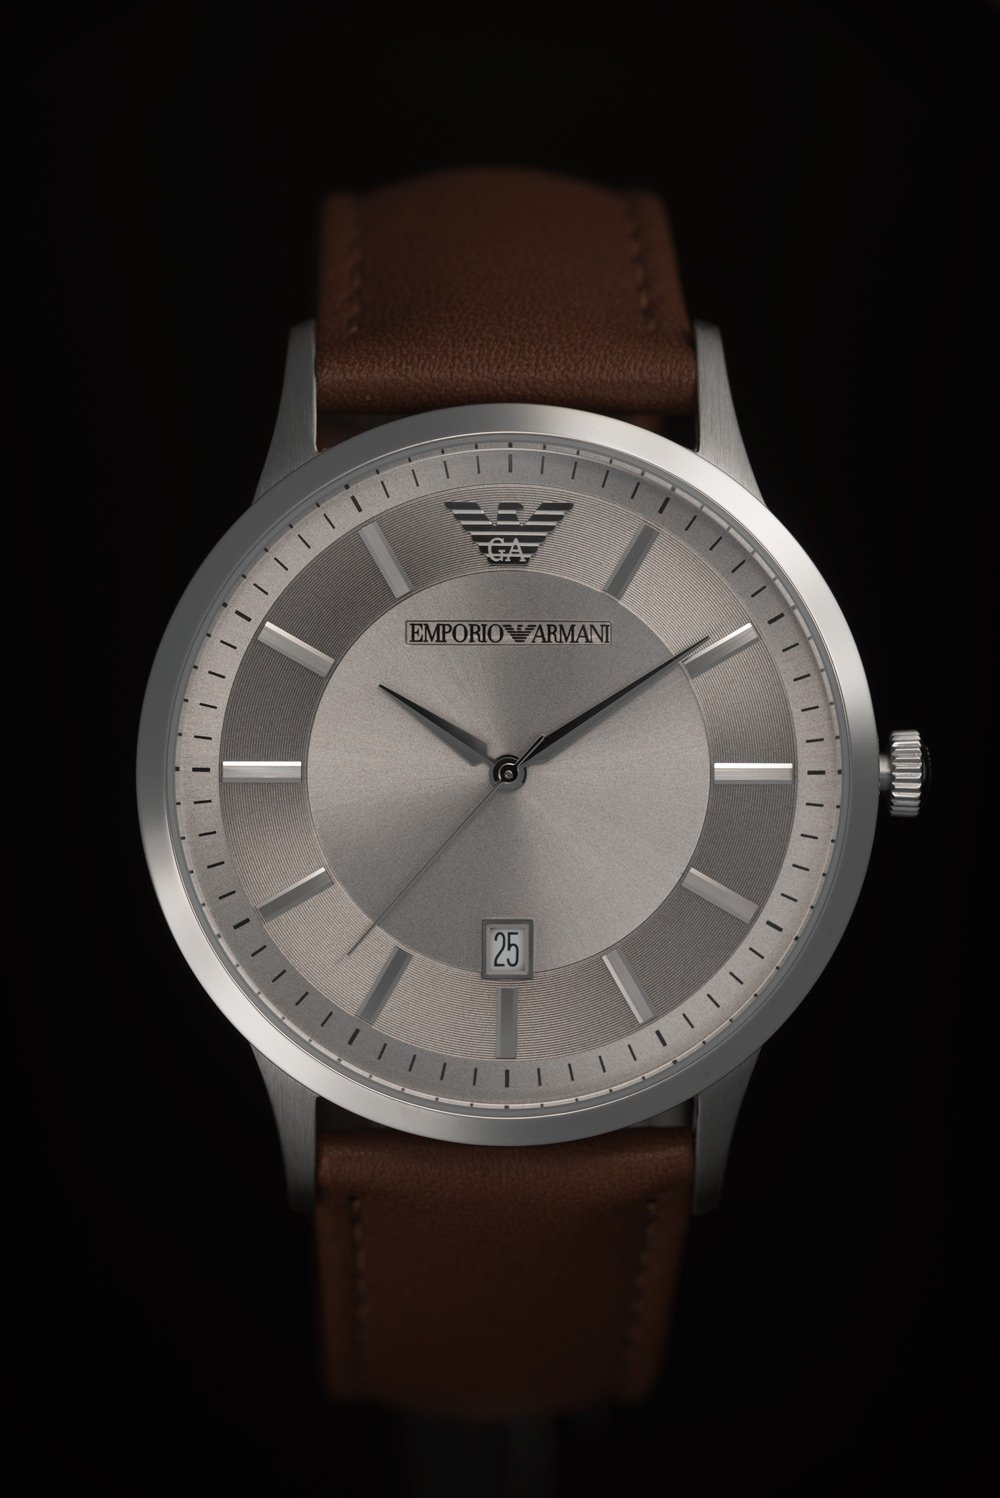 An Emporio Armani watch against a dark background. The watch appears matt and not glossy, a key watch photography tip